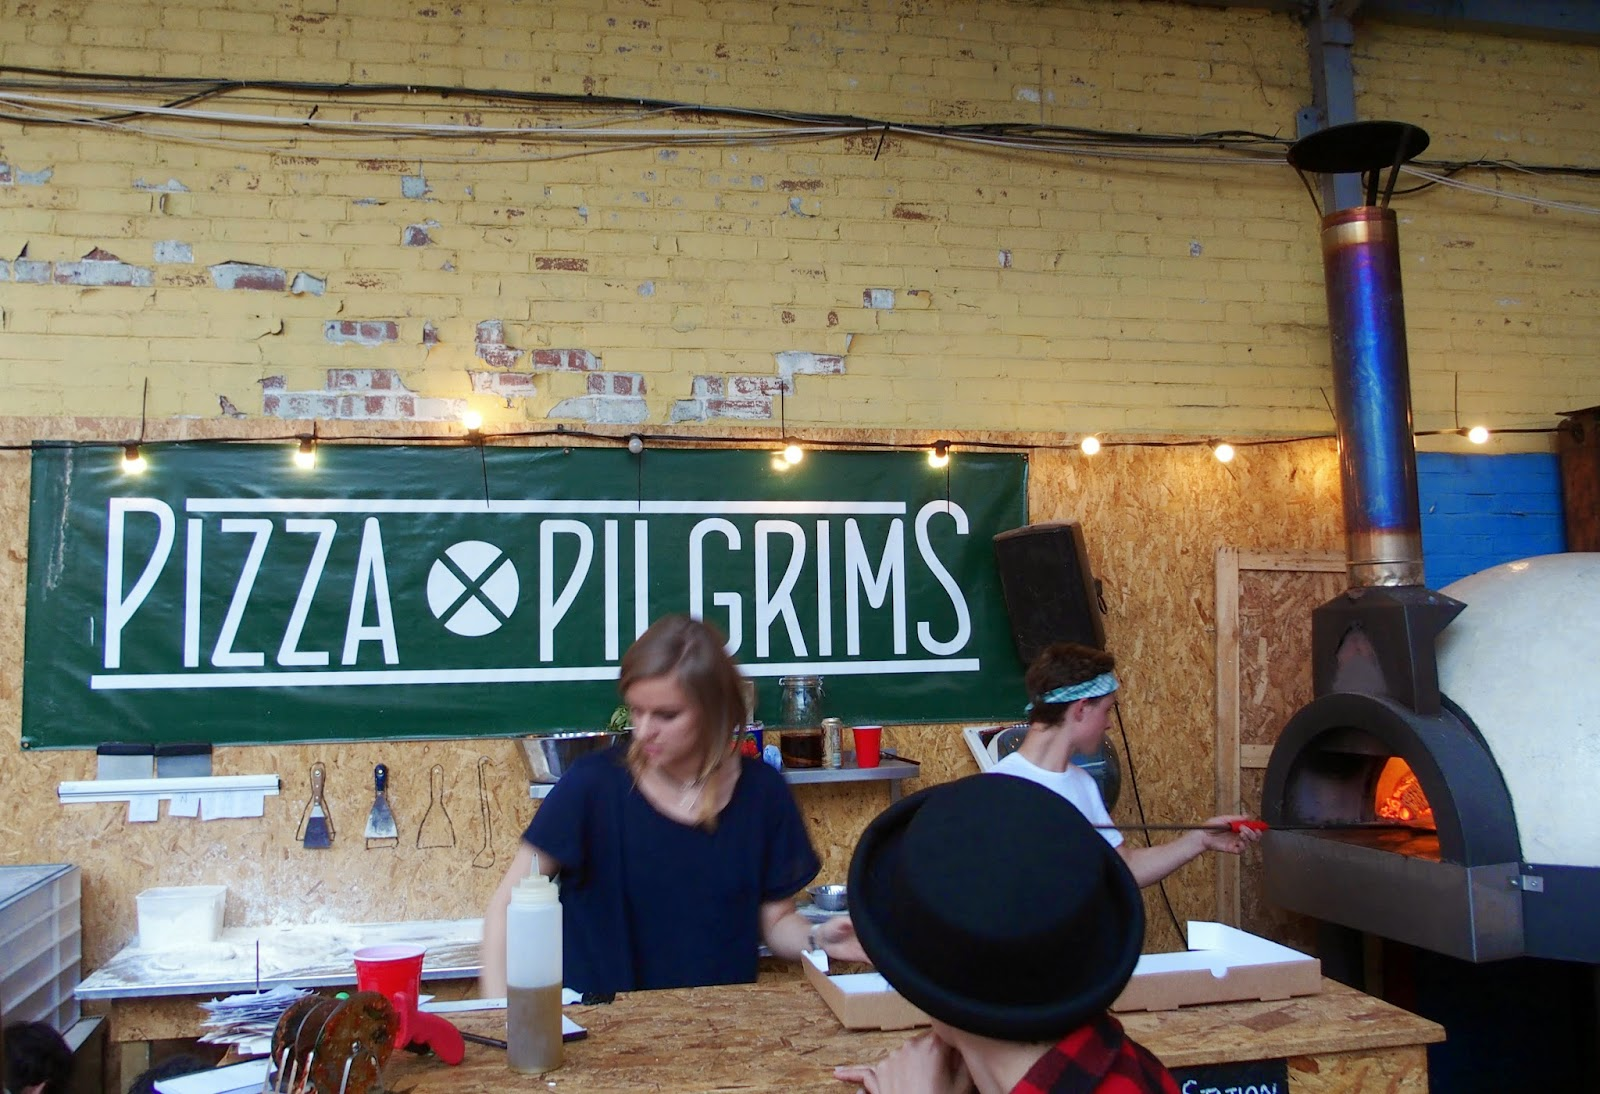 Street Feast London - Dalston Yard